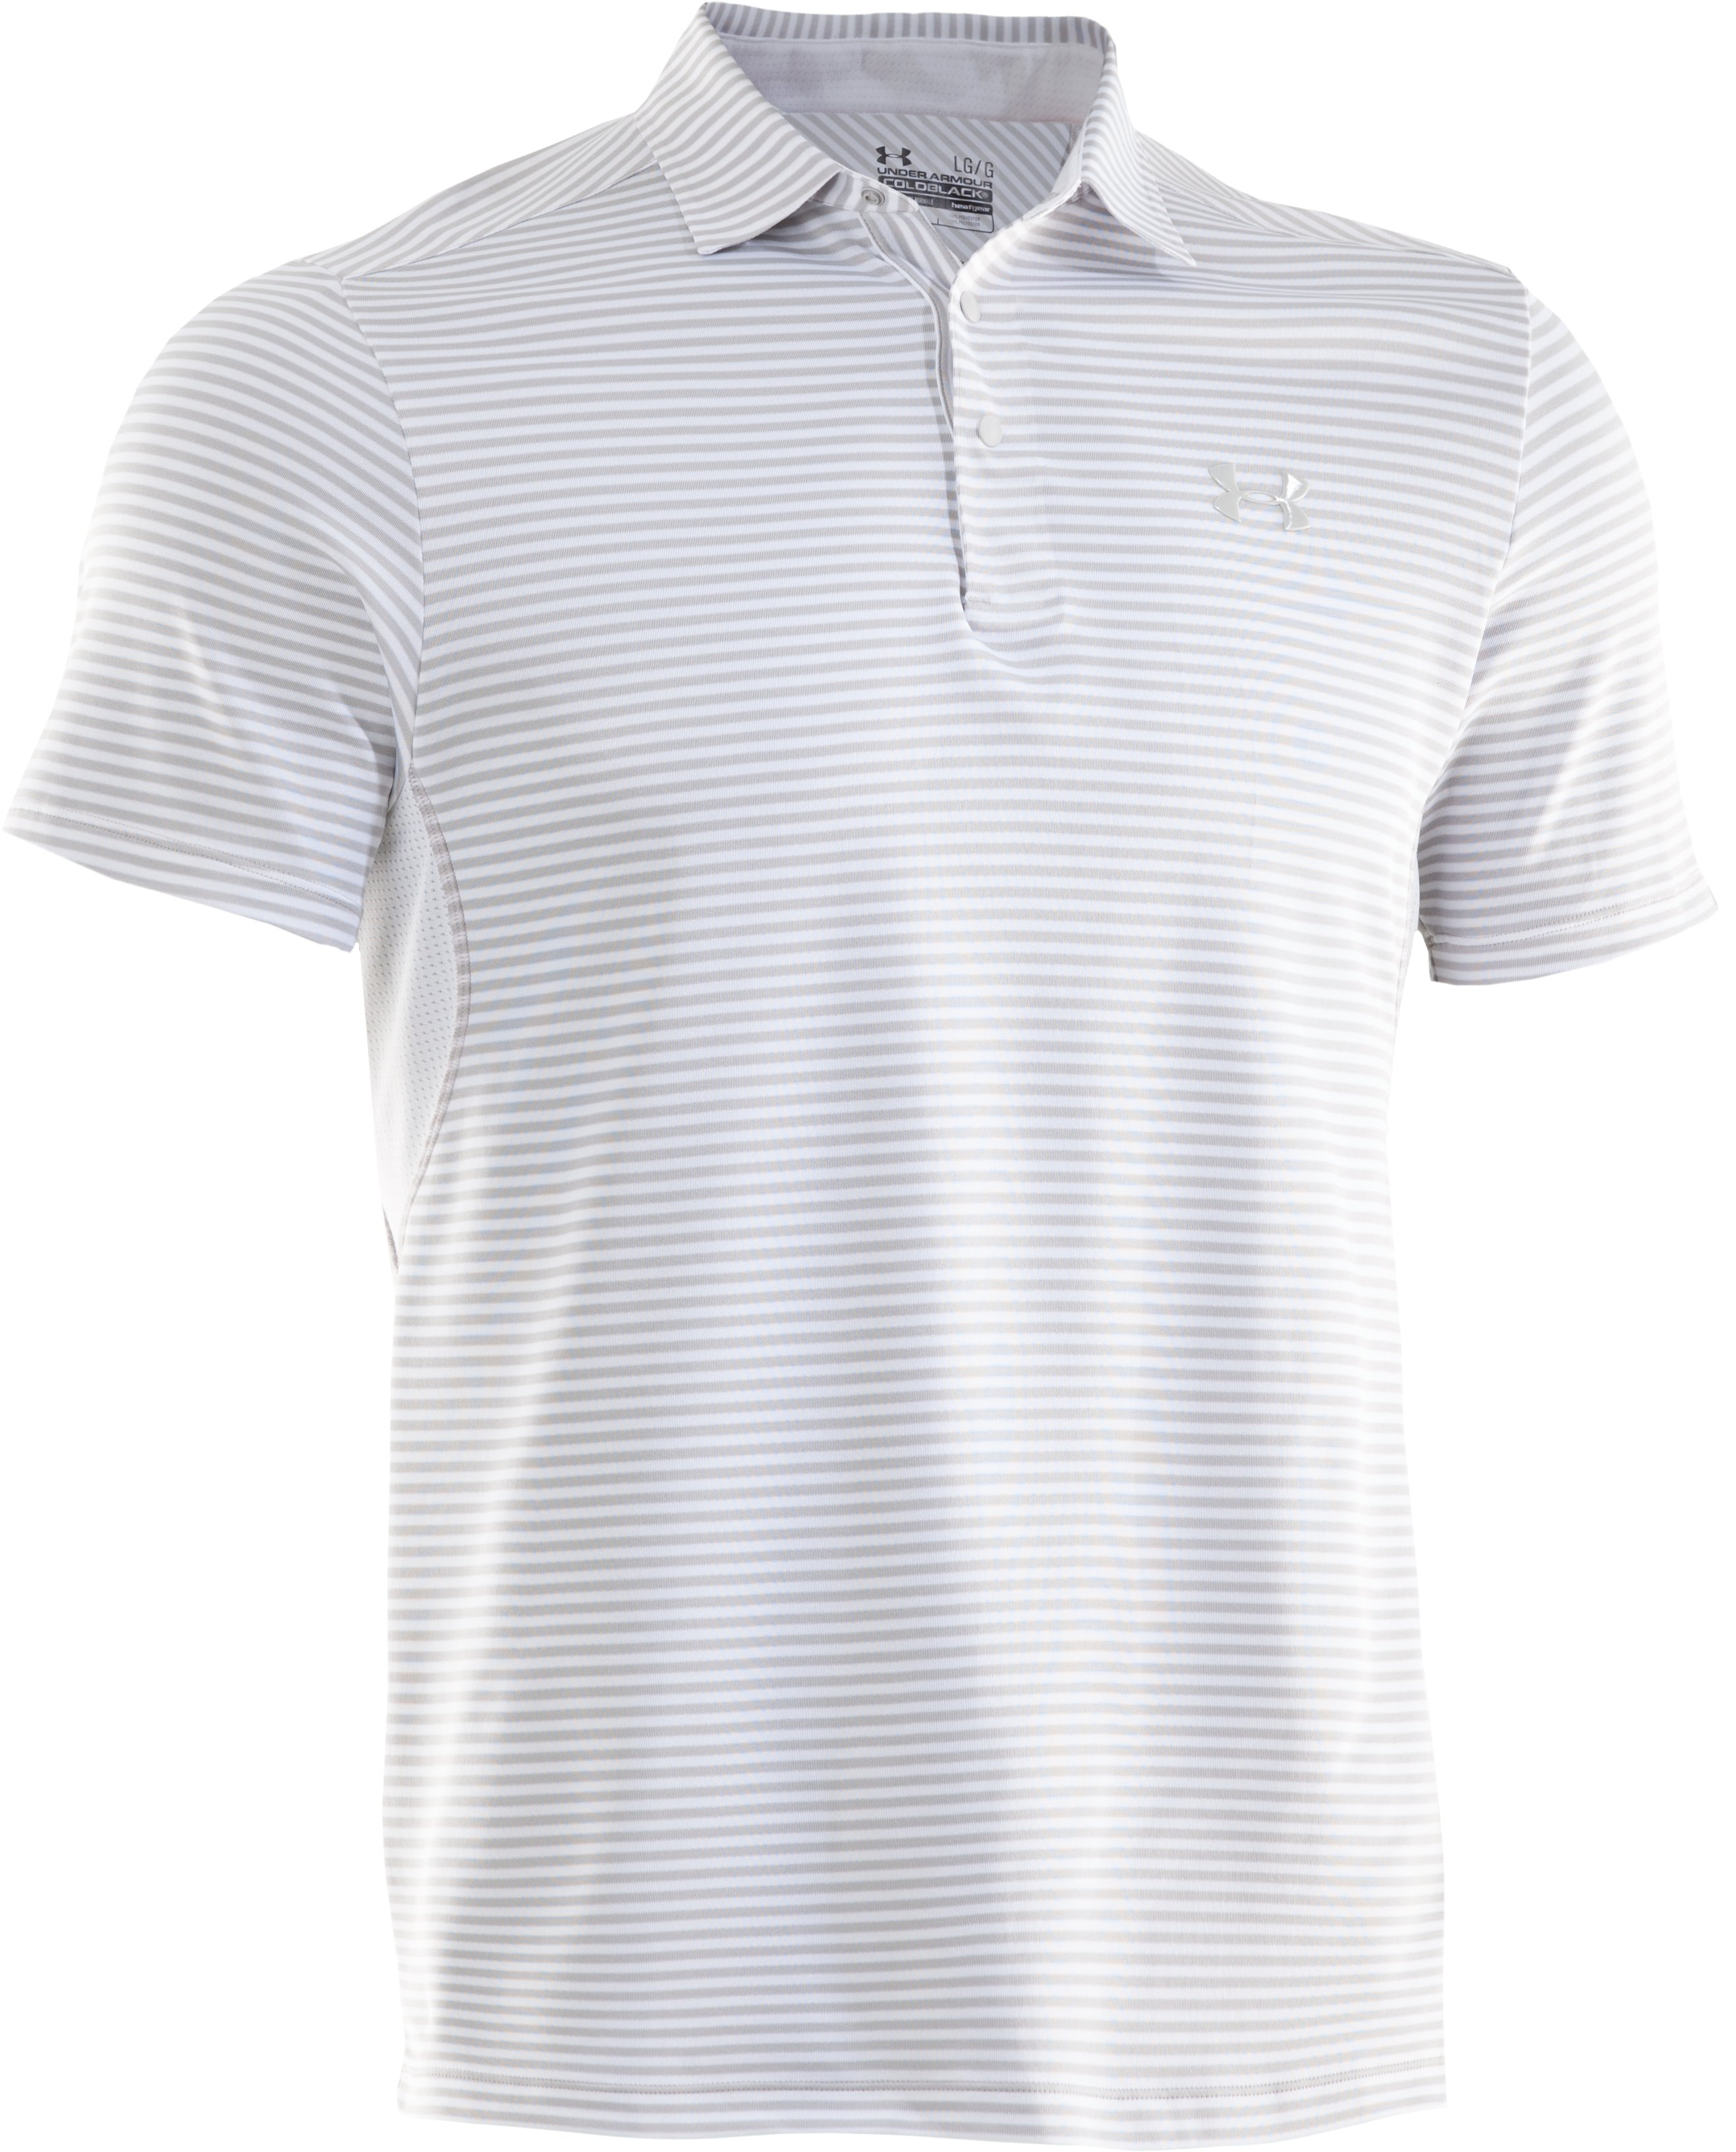 Men's coldblack® Optic Stripe Polo, White